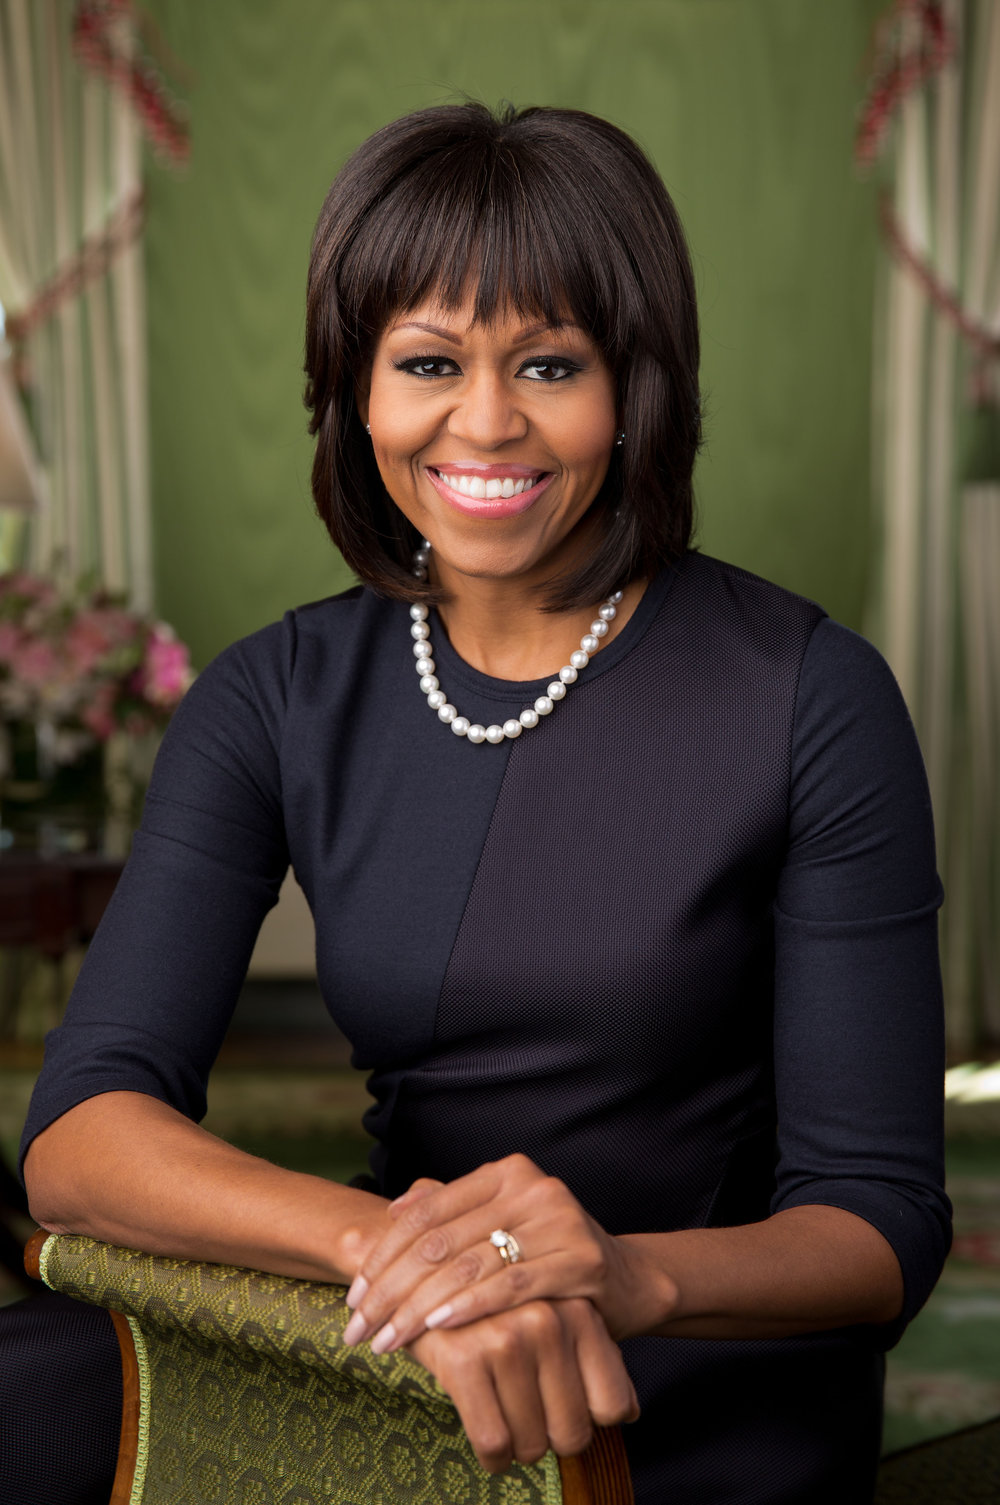 First Lady Michelle Obama, Image courtesy of nytimes.com.